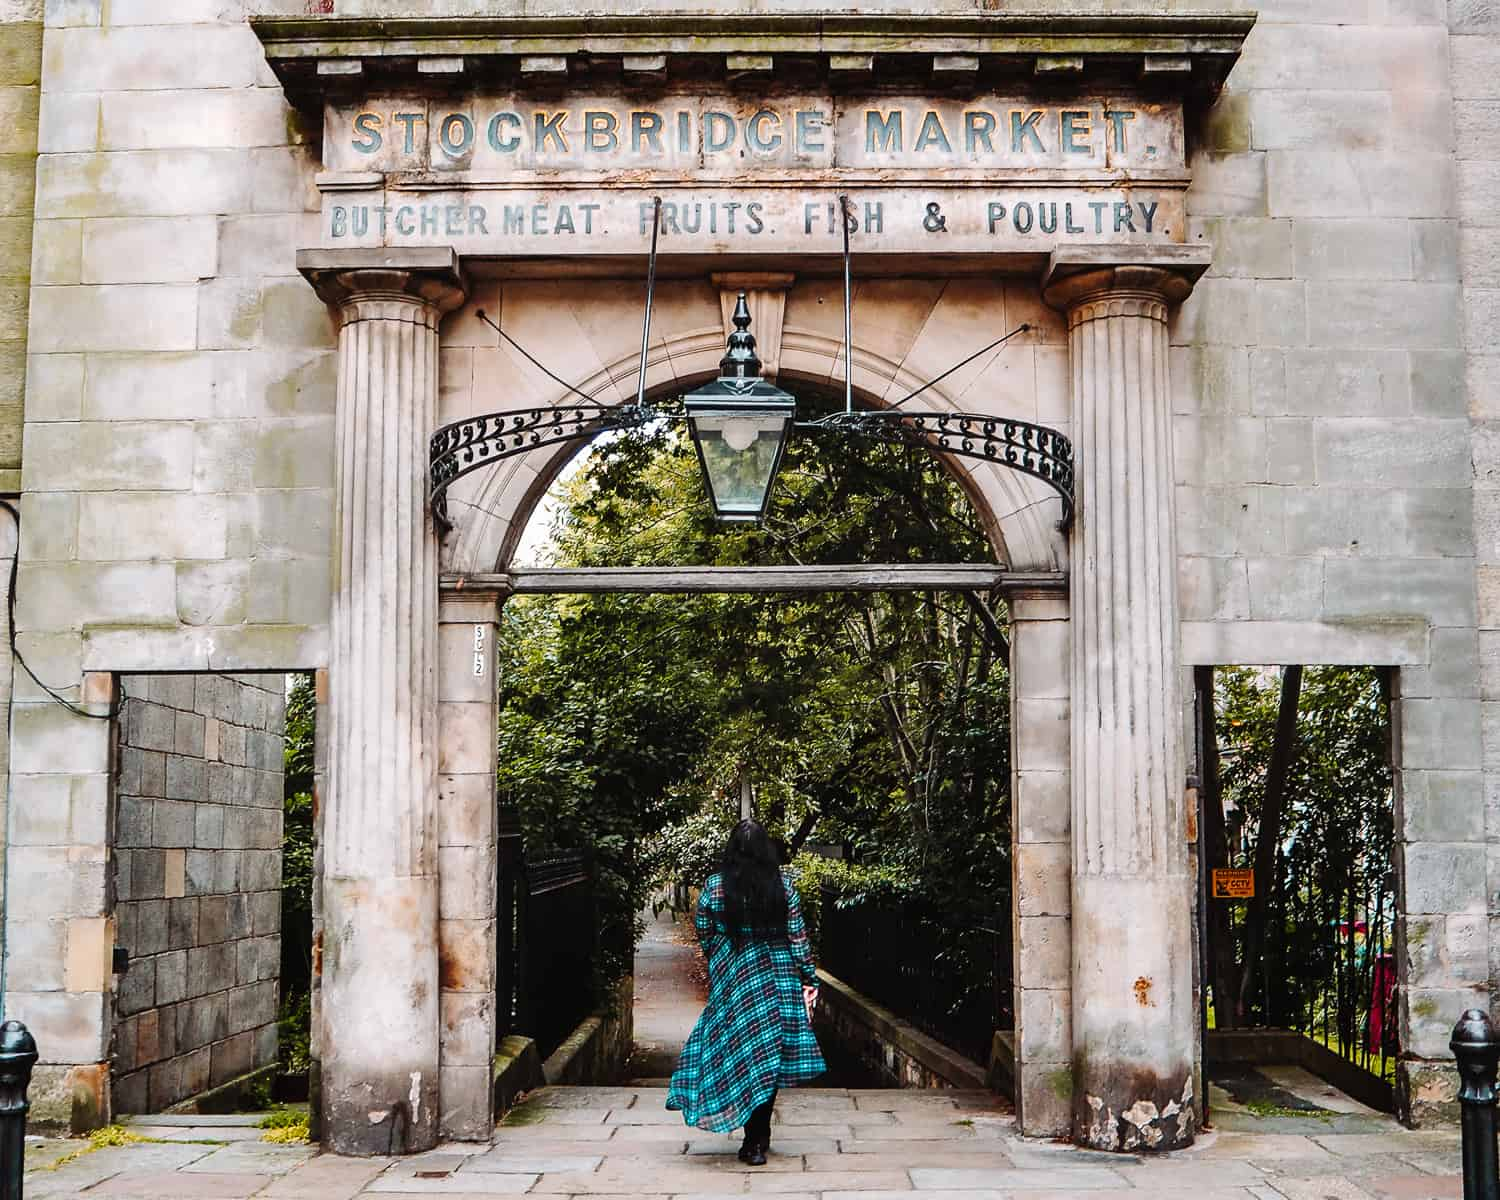 Old Stockbridge Market Arch Edinburgh